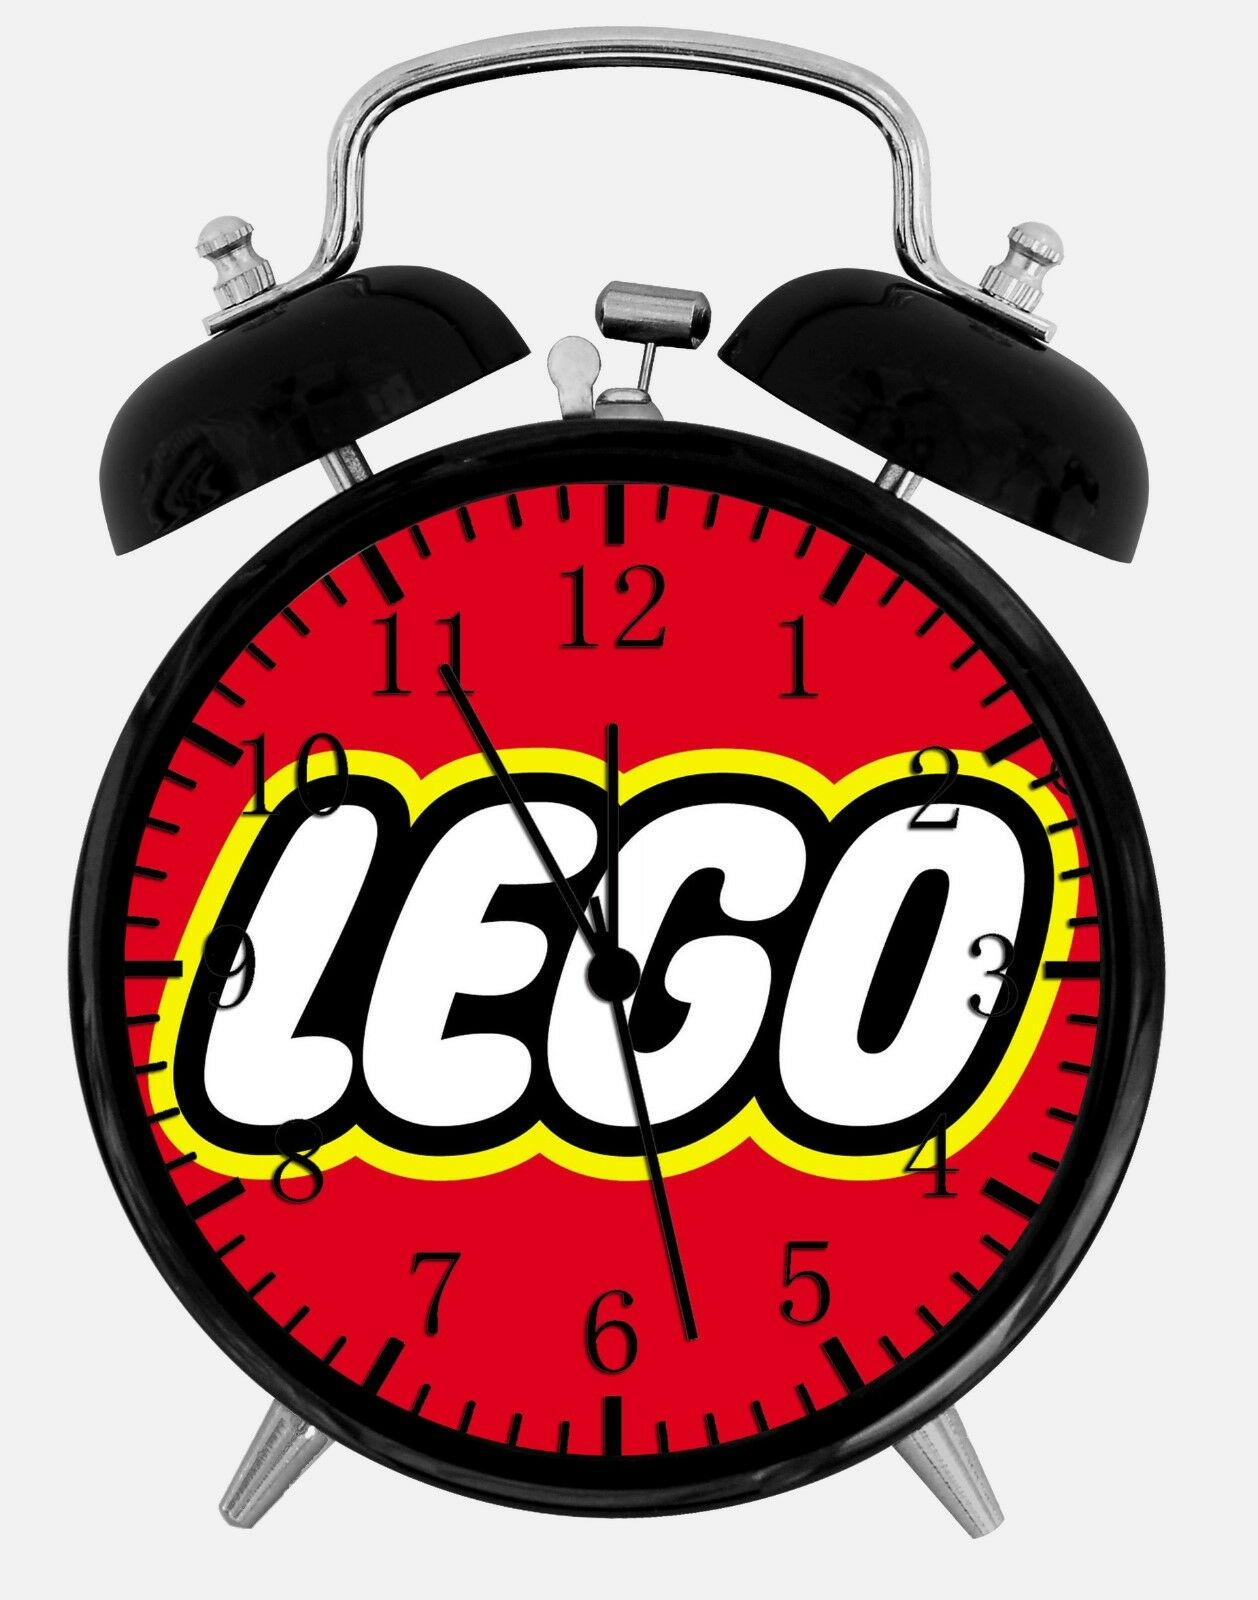 """Lego Alarm Desk Clock 3.75"""" Home or Office Decor W430 Nice For Gift"""